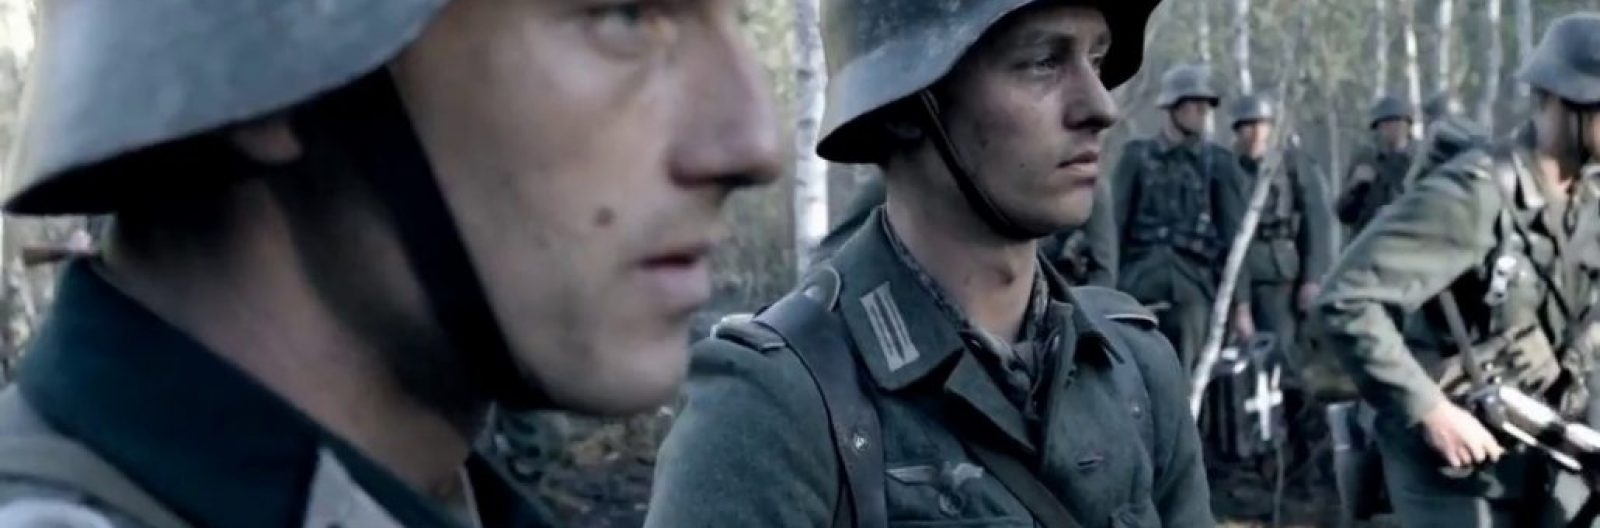 8 Superb War Movies You (Probably) Haven't Seen - But Should